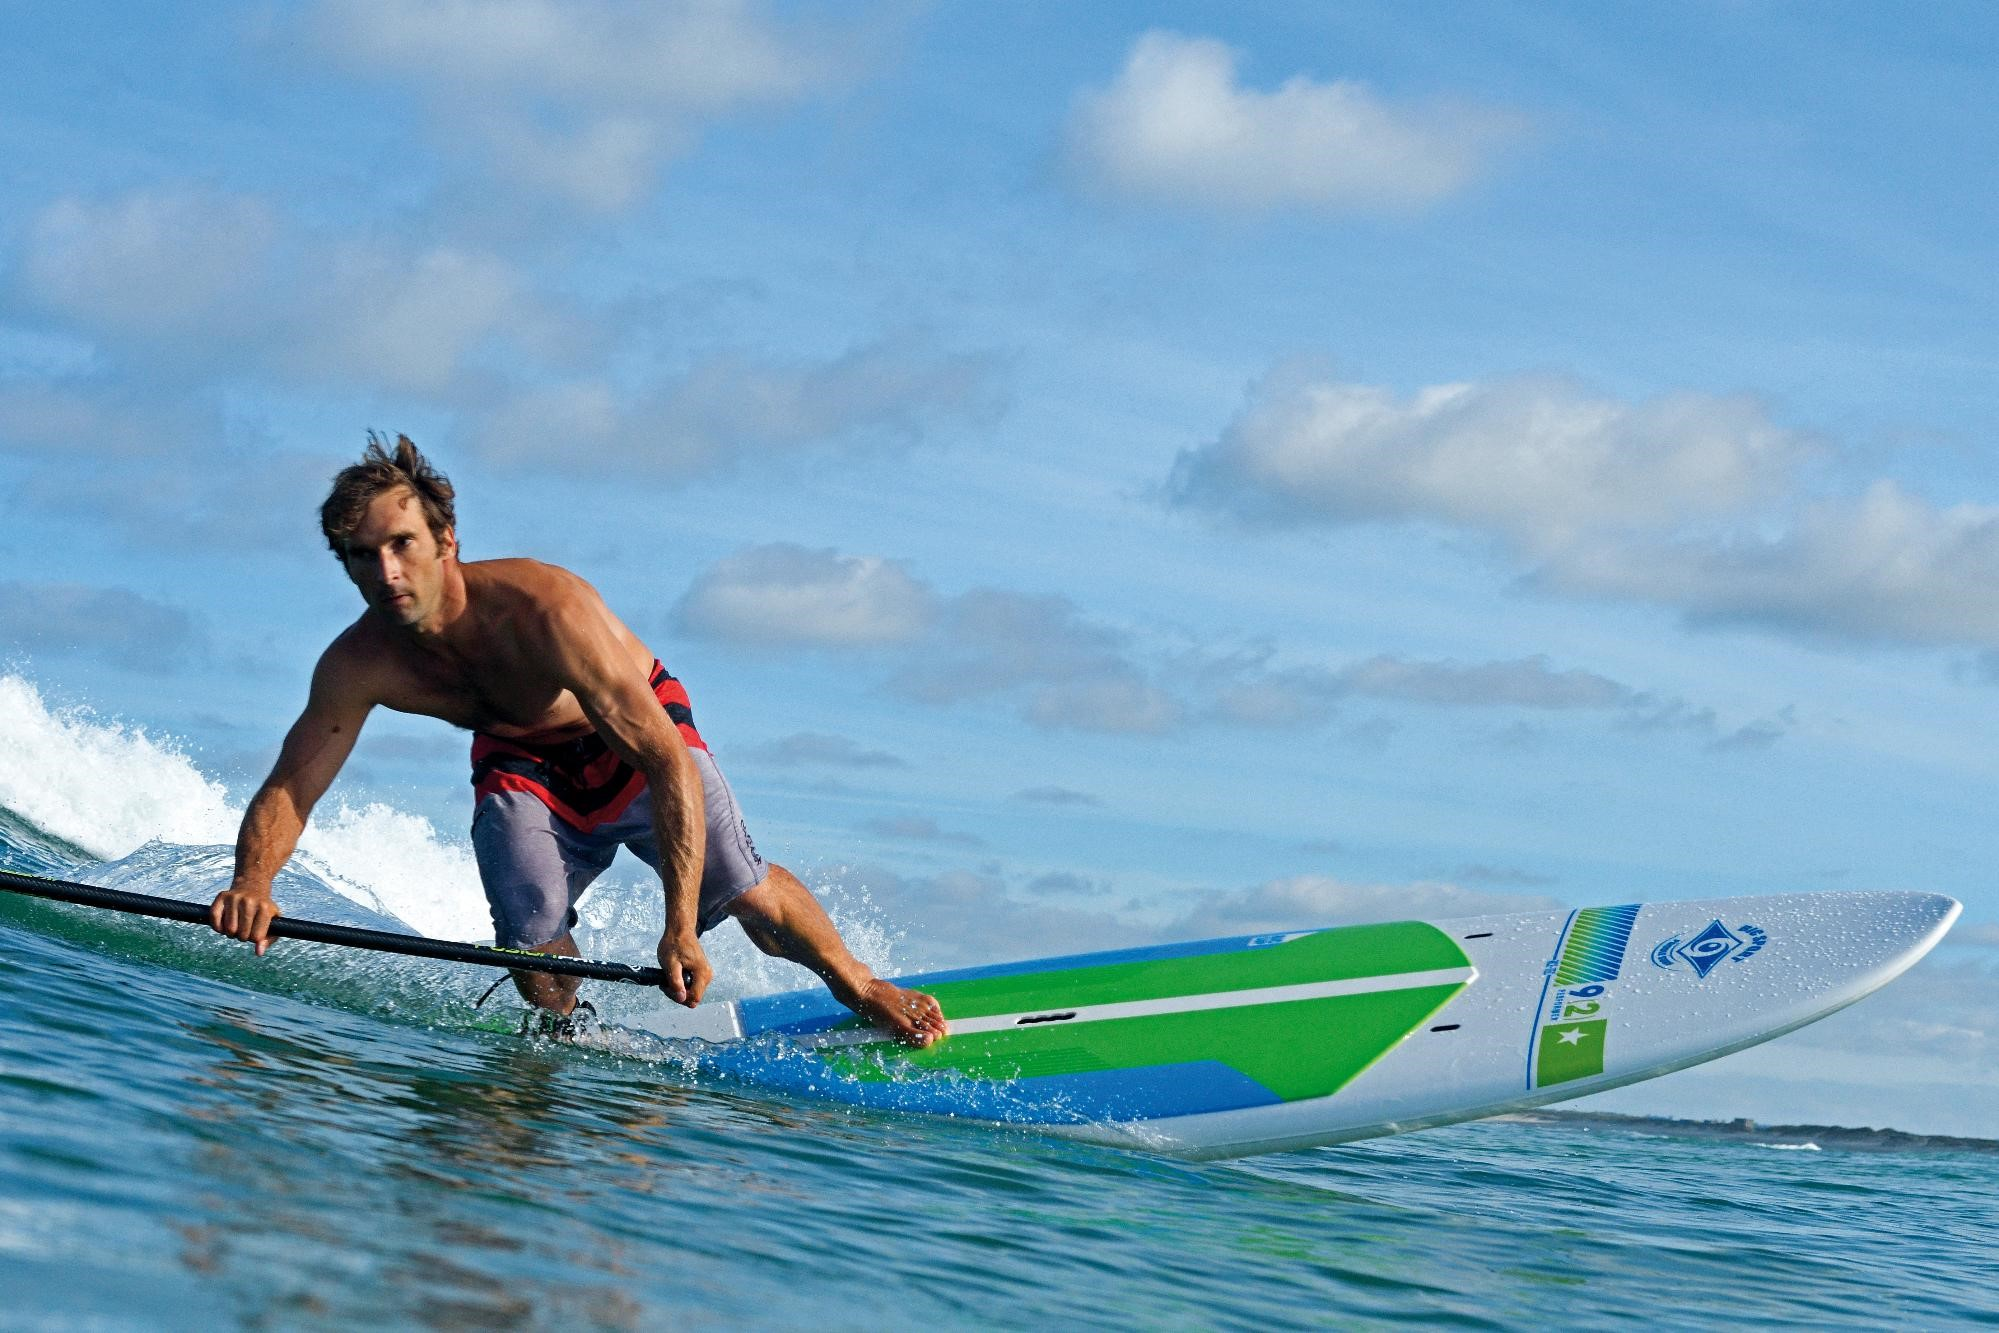 Surfing on a Paddleboard